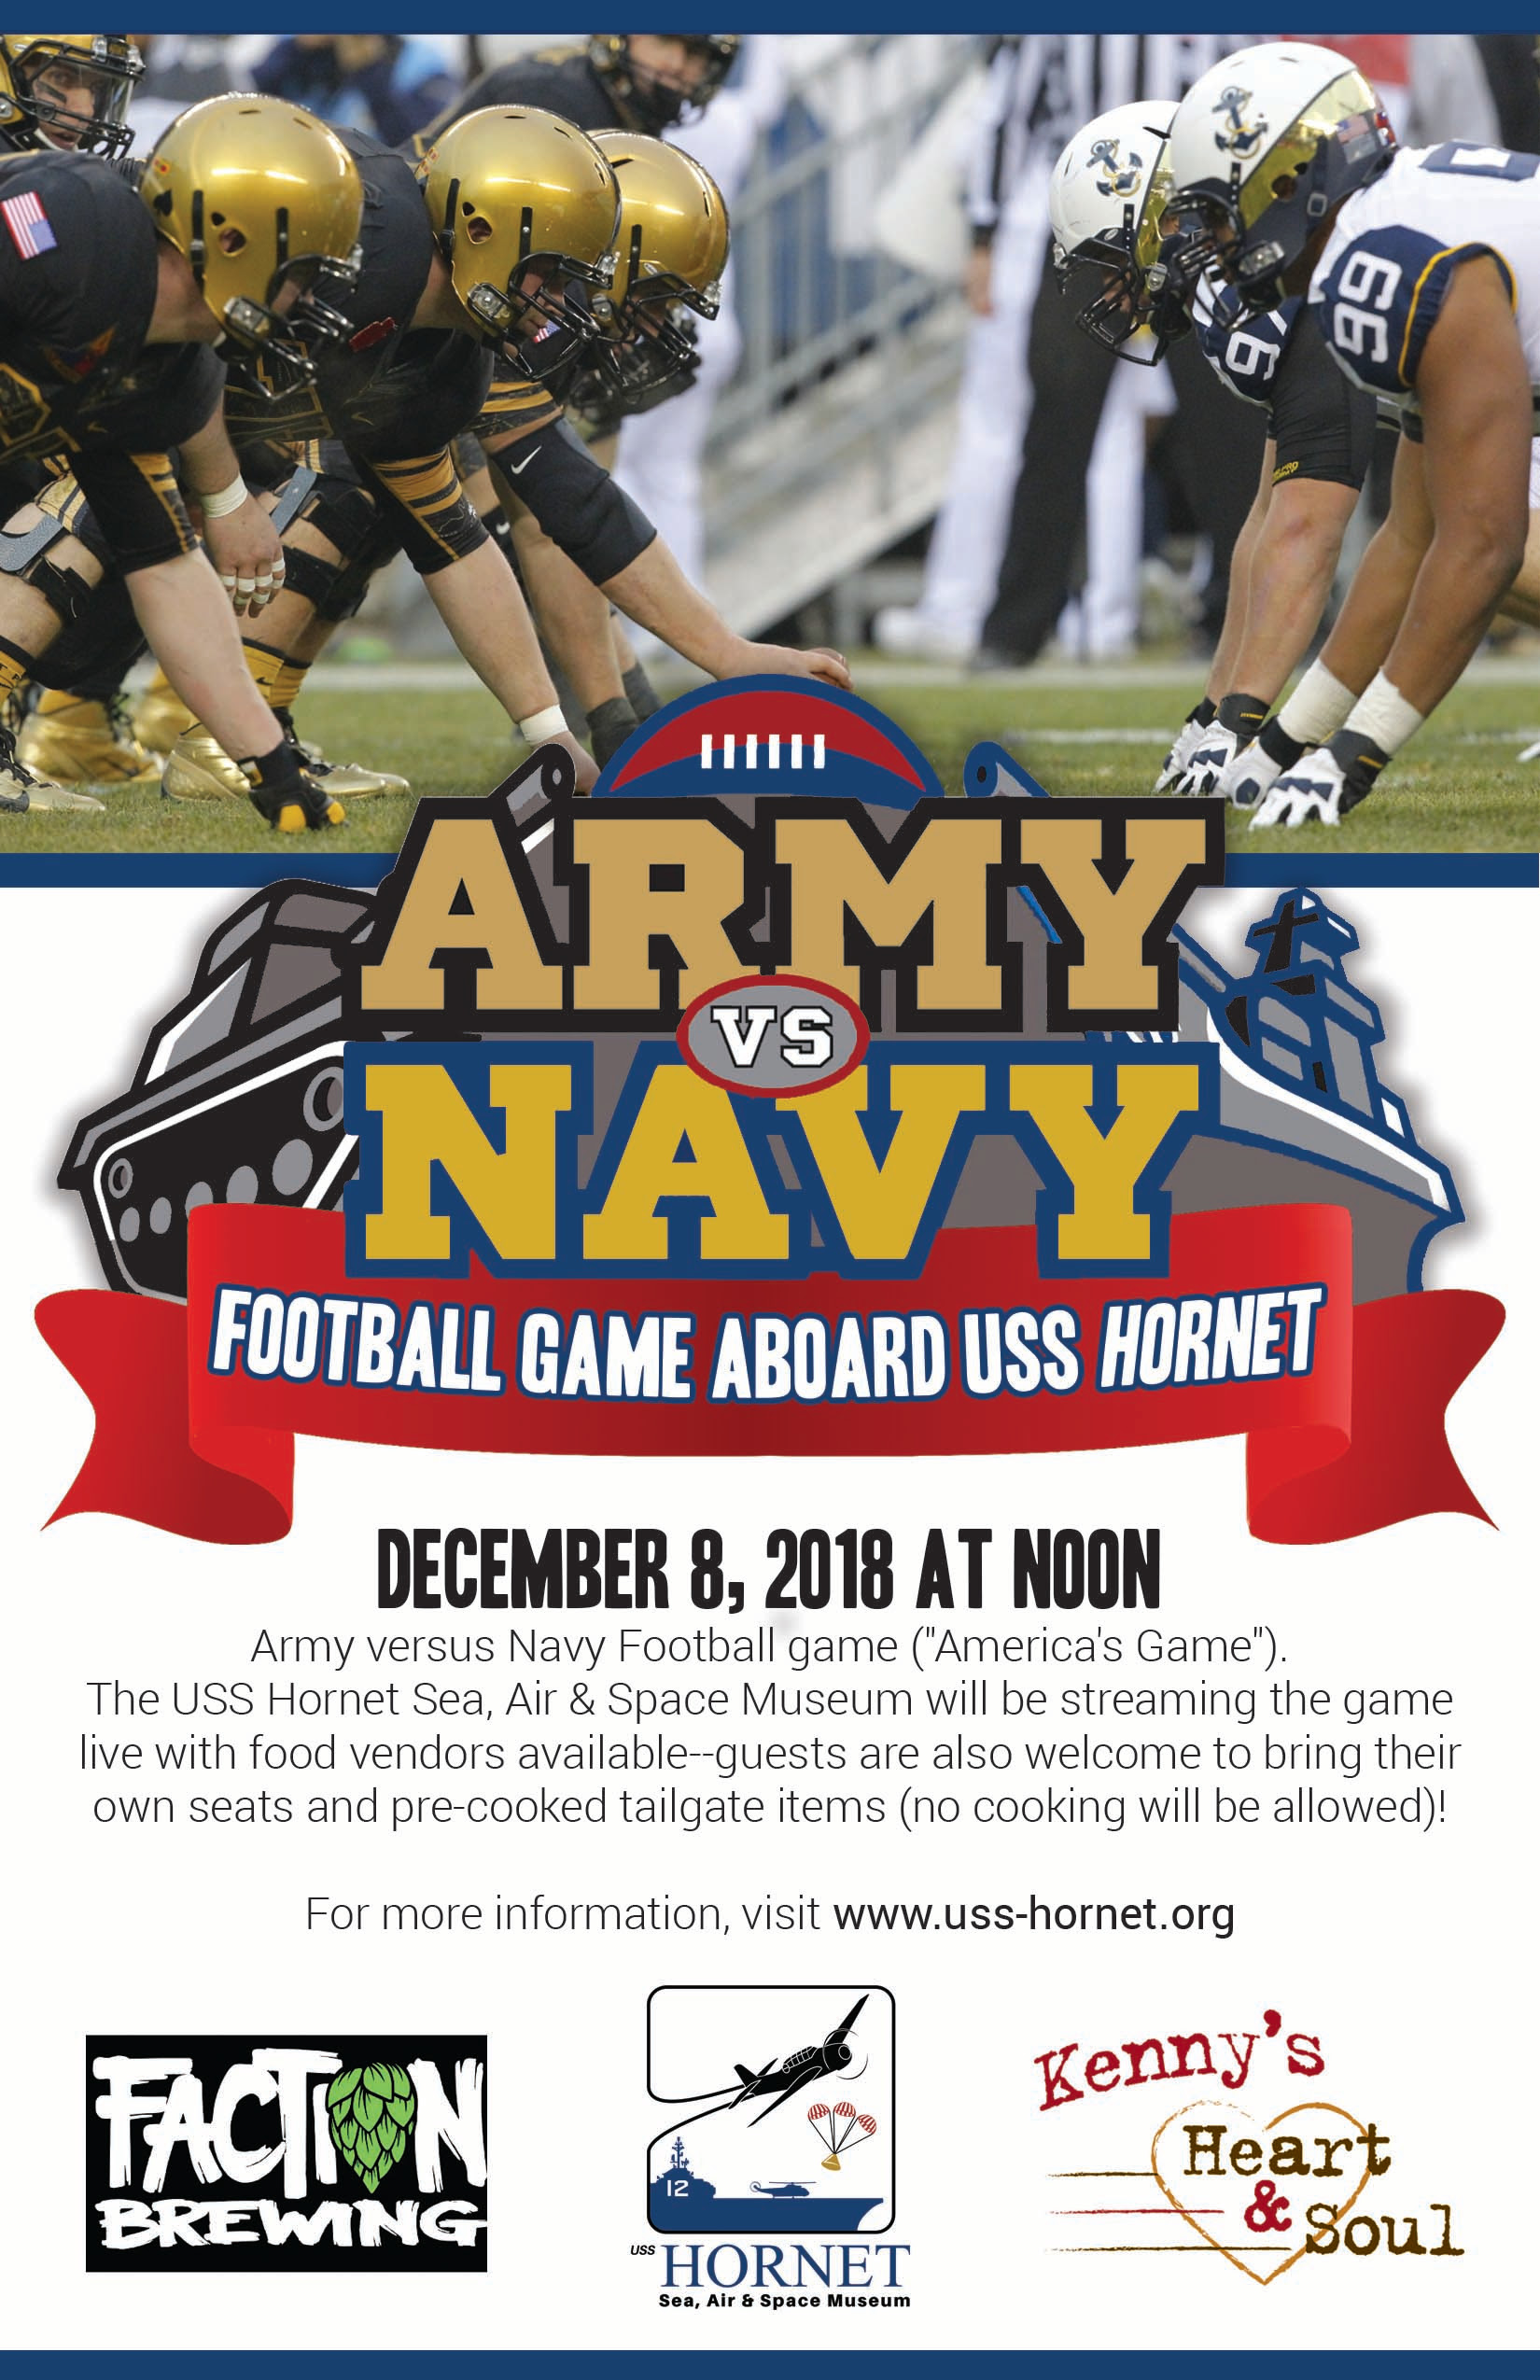 army navy game 2019 - photo #21